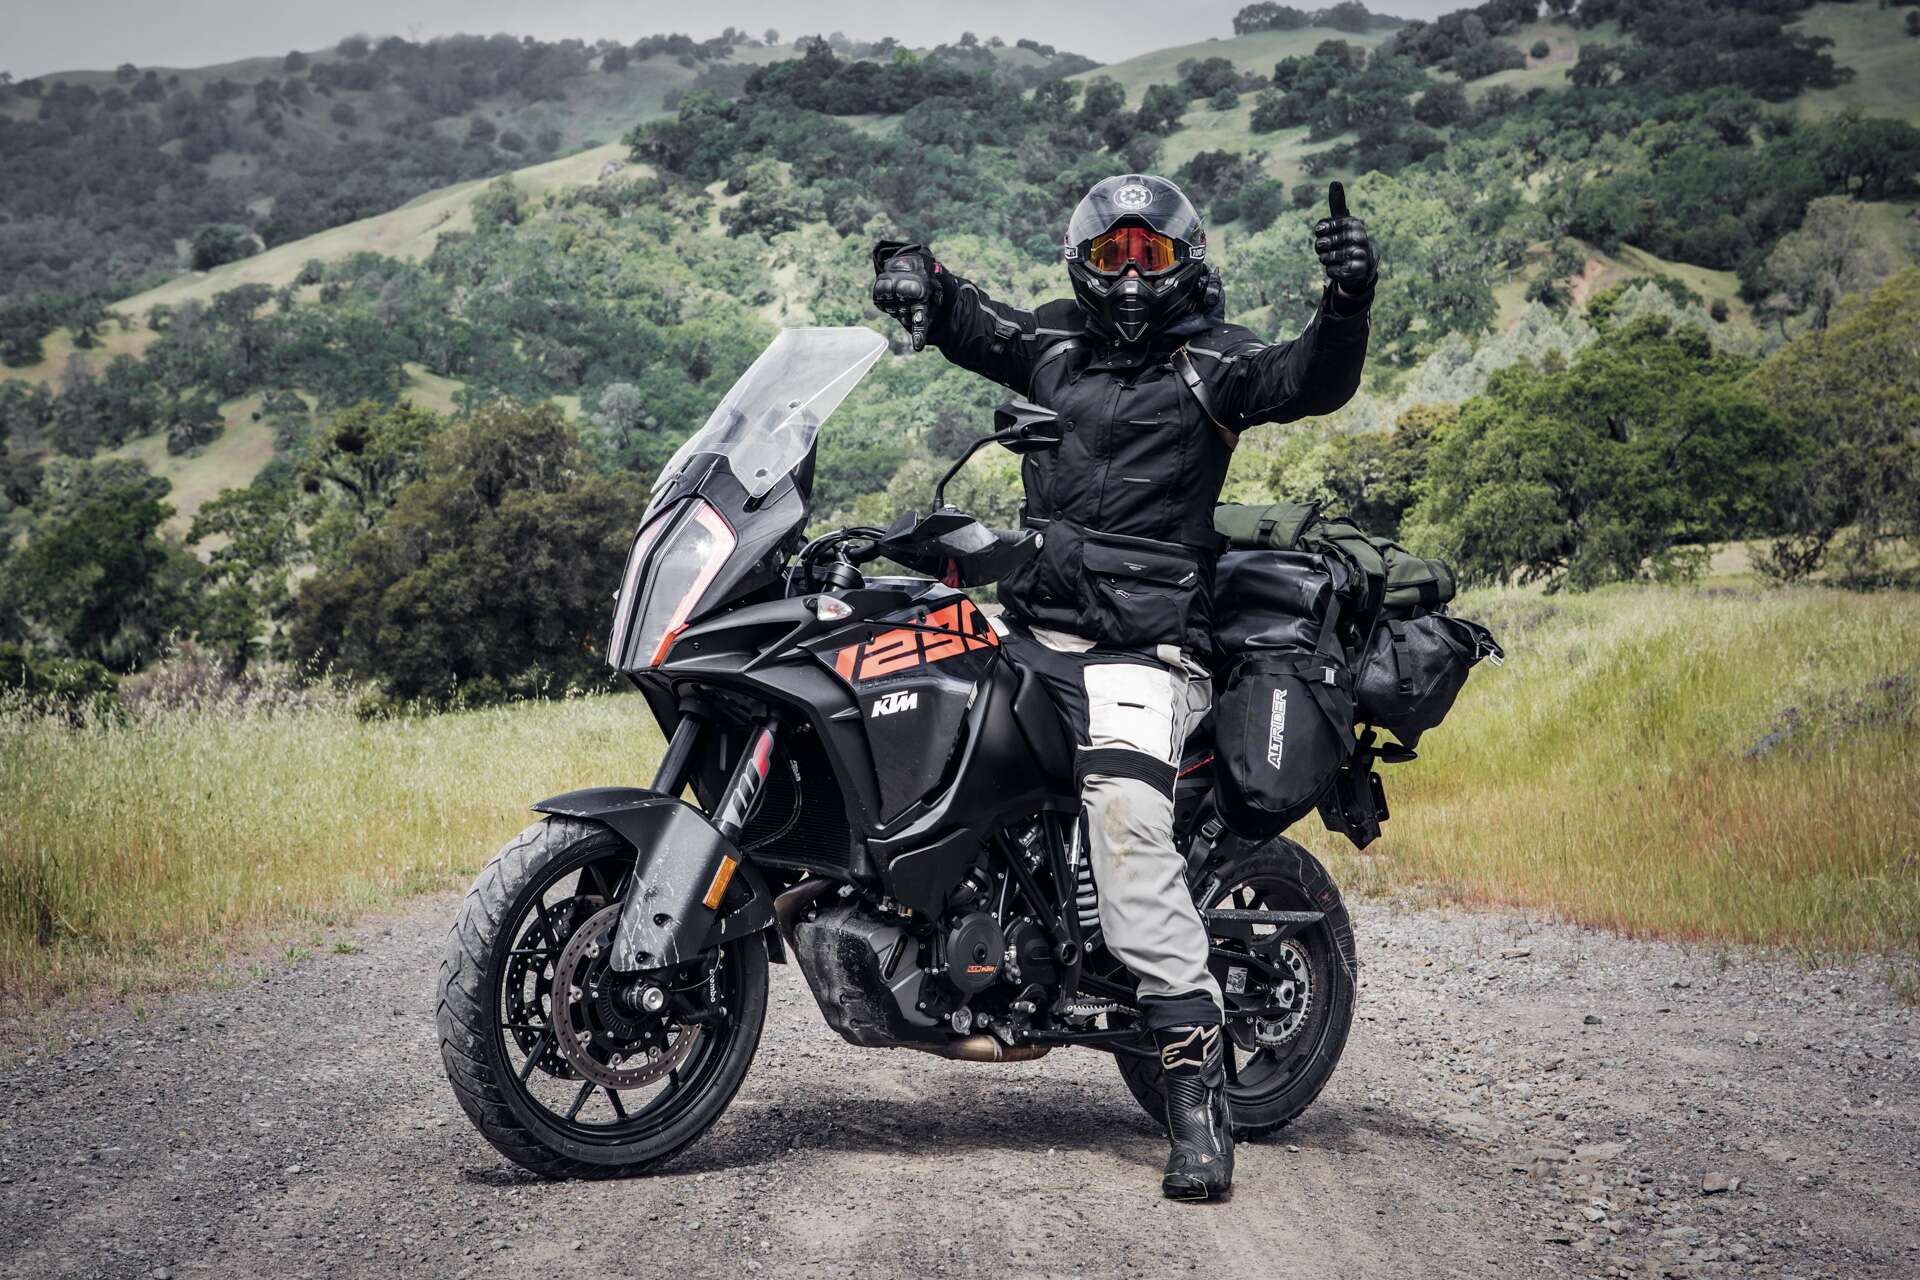 Ktm 1290 Super Adventure S Review Paradise Found On The